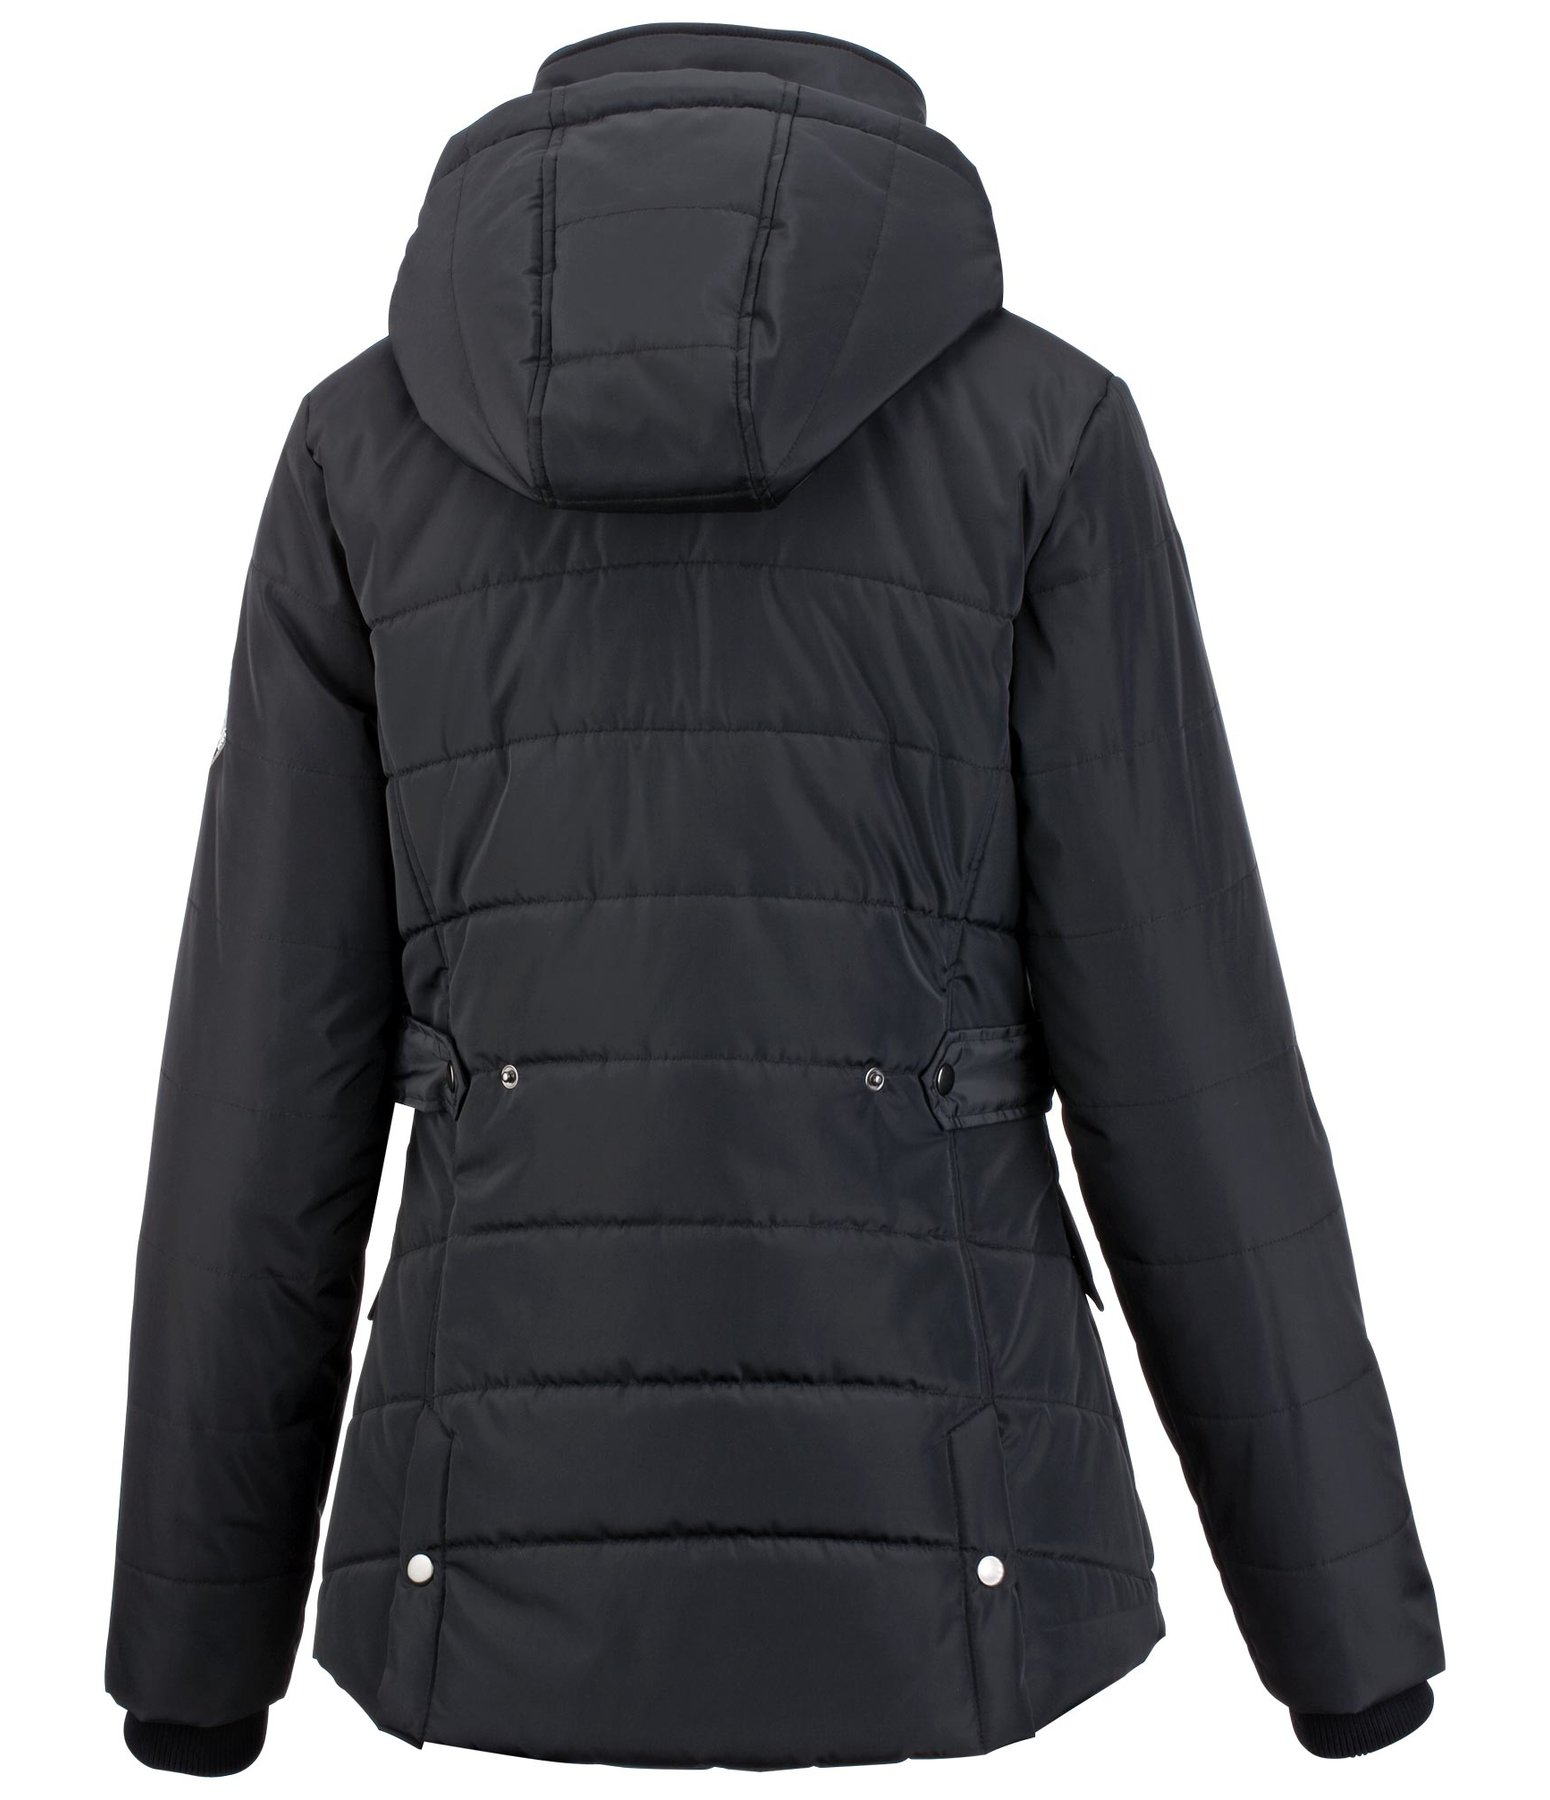 Hooded Quilted Jacket Frida Winter Riding Jackets